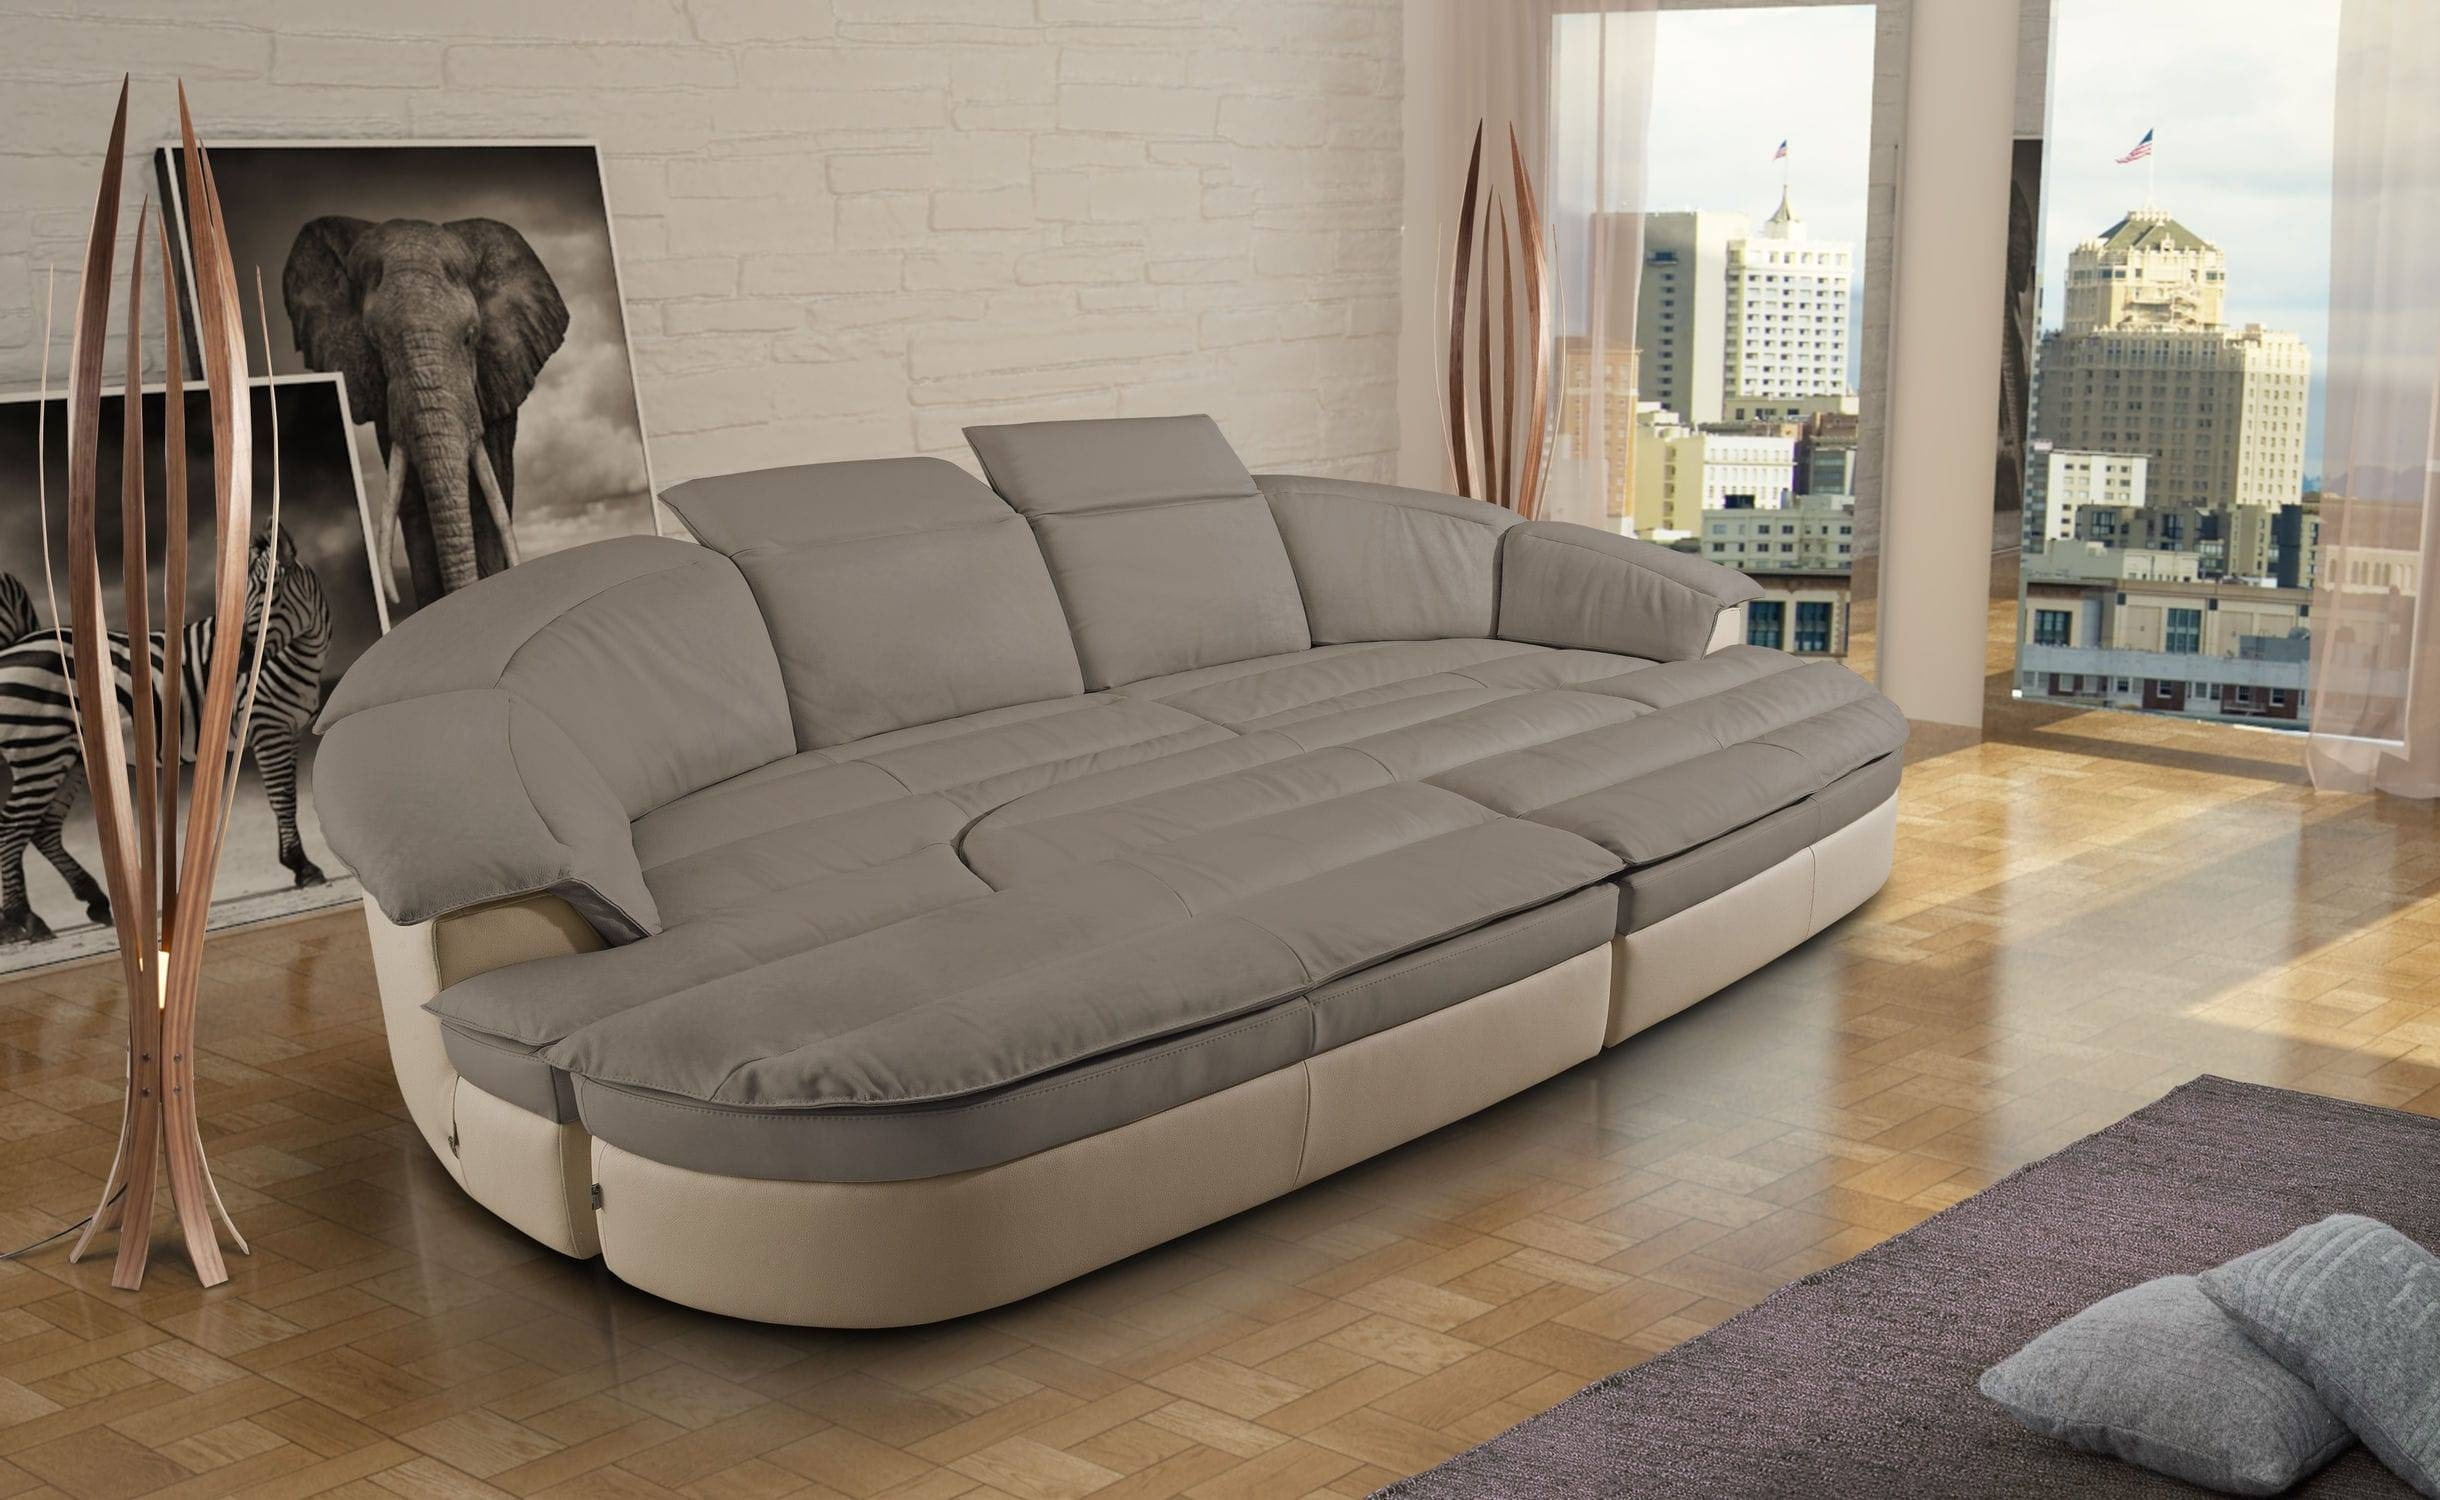 Modular Sofa / Semicircular / Contemporary / Leather - Galaxy pertaining to Semicircular Sofa (Image 7 of 30)